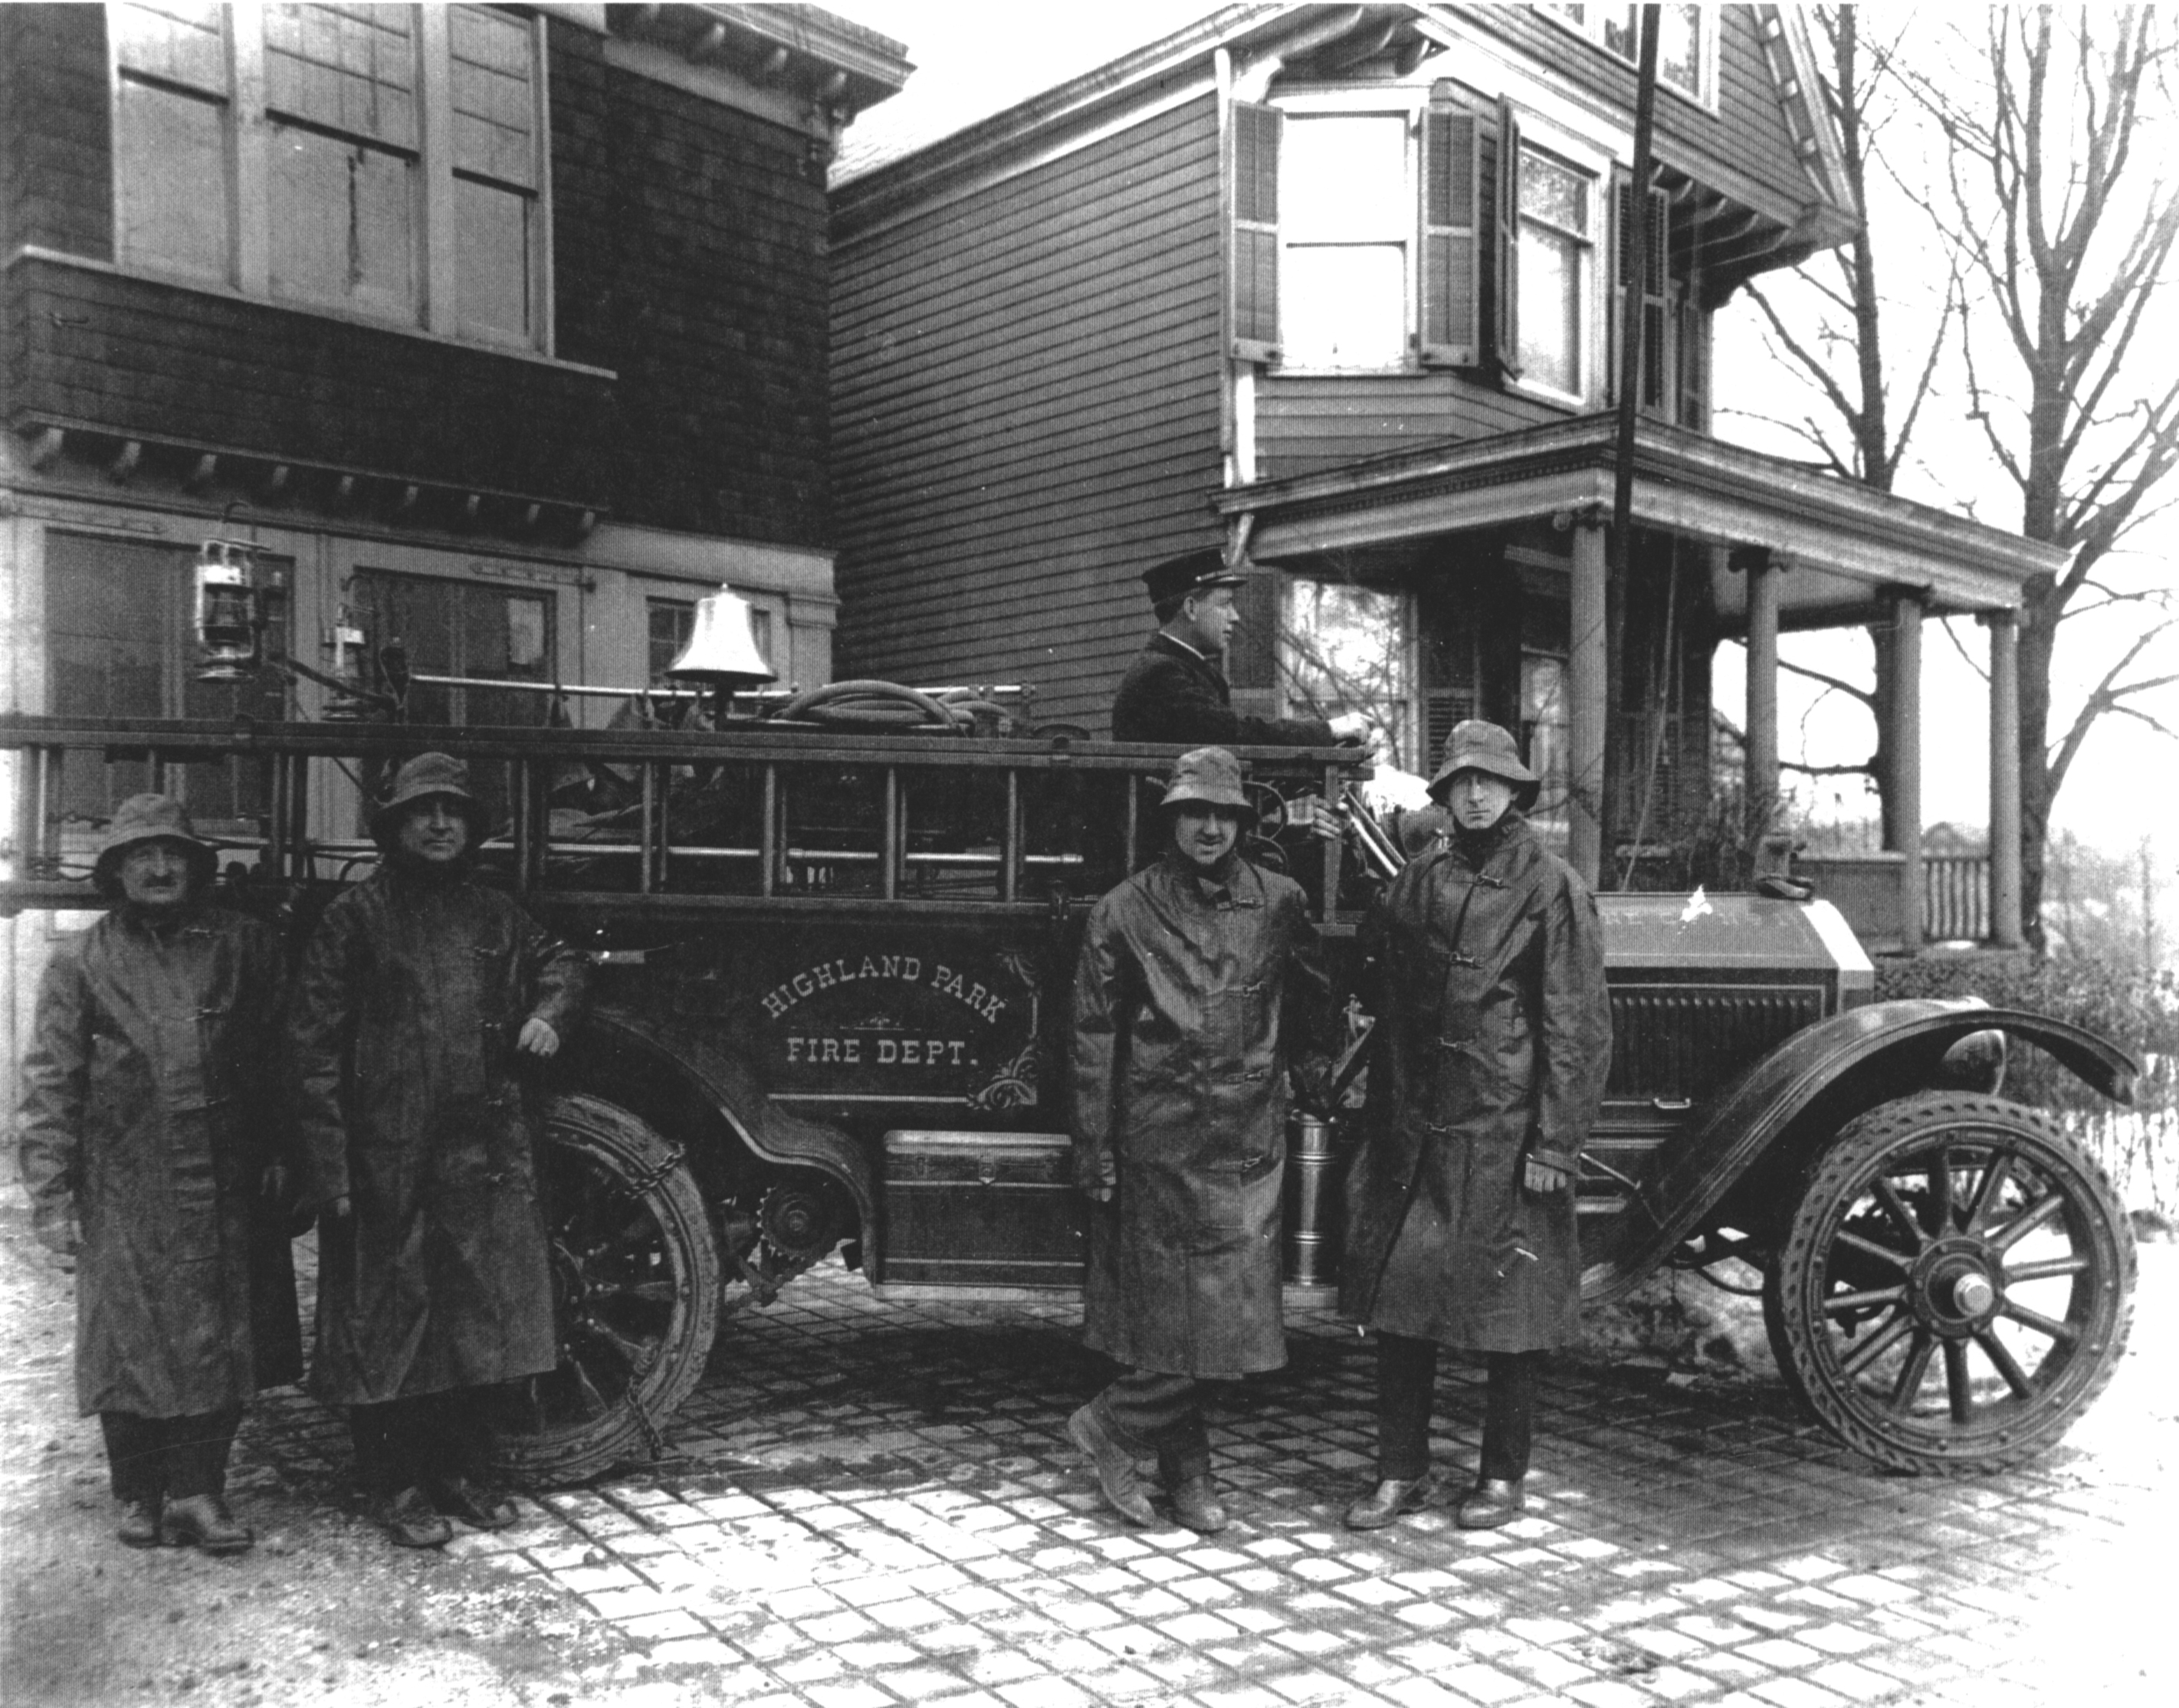 Photo in front of the firehouse in 1922